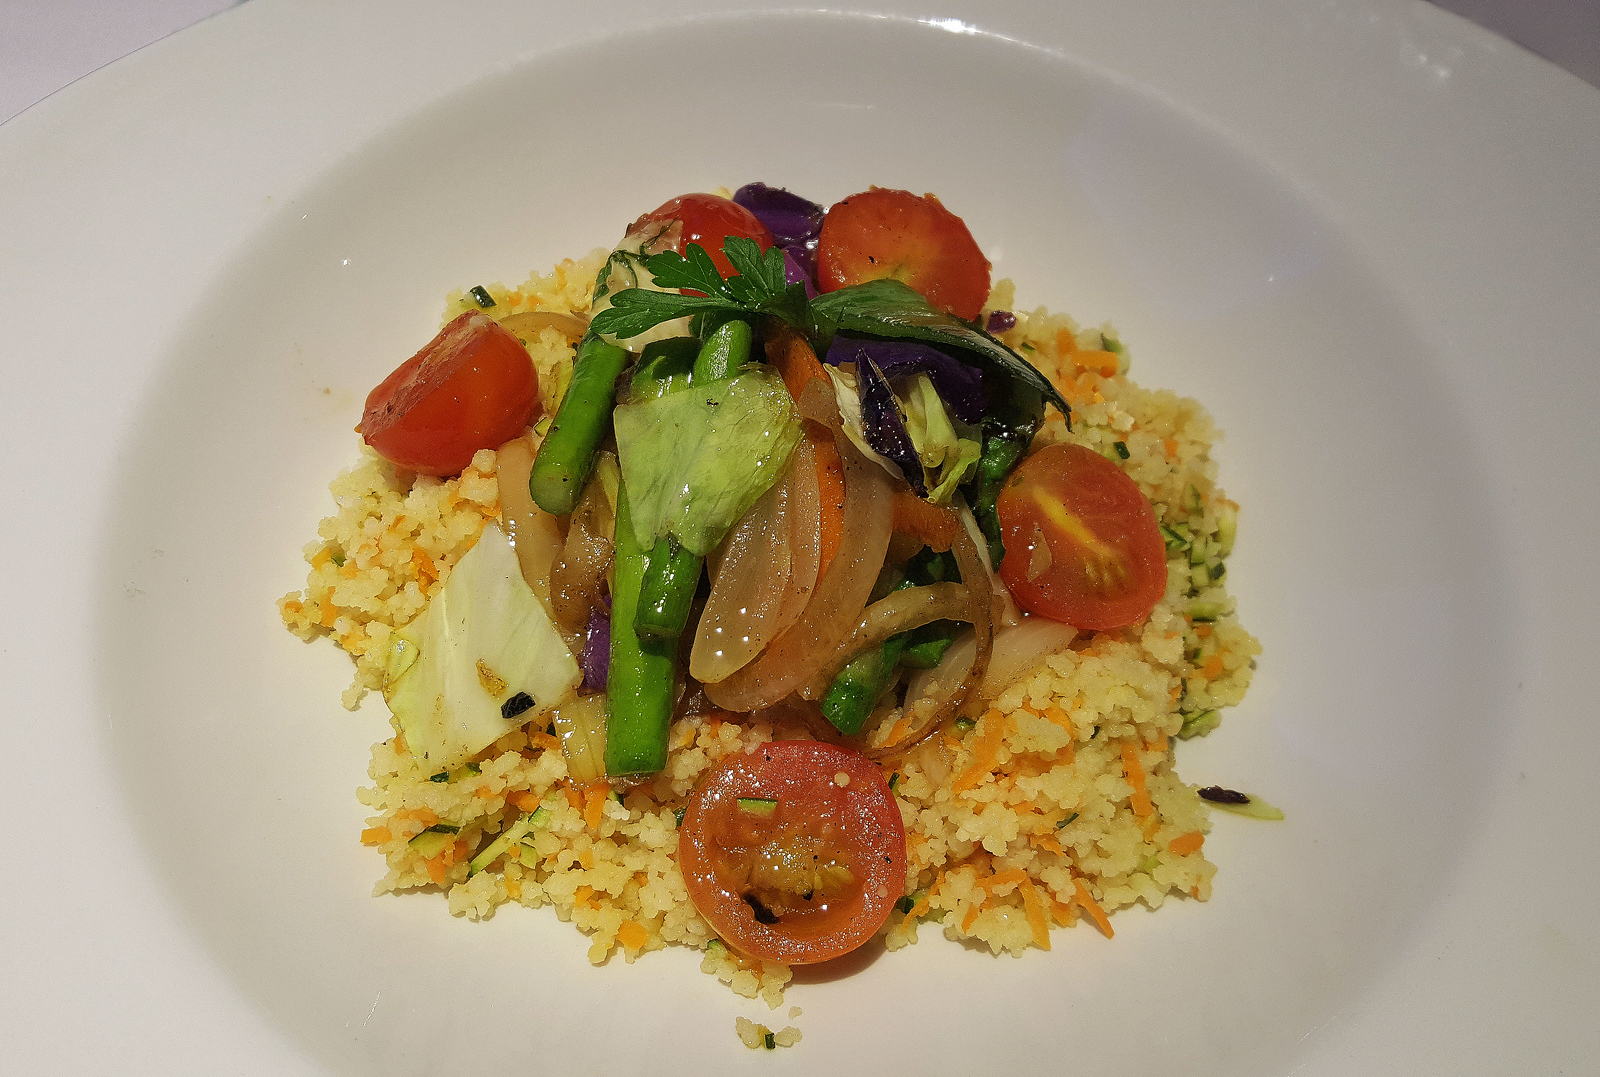 Vegan food at the Hotel Riu Palace Tropical Bay Resort in Negril